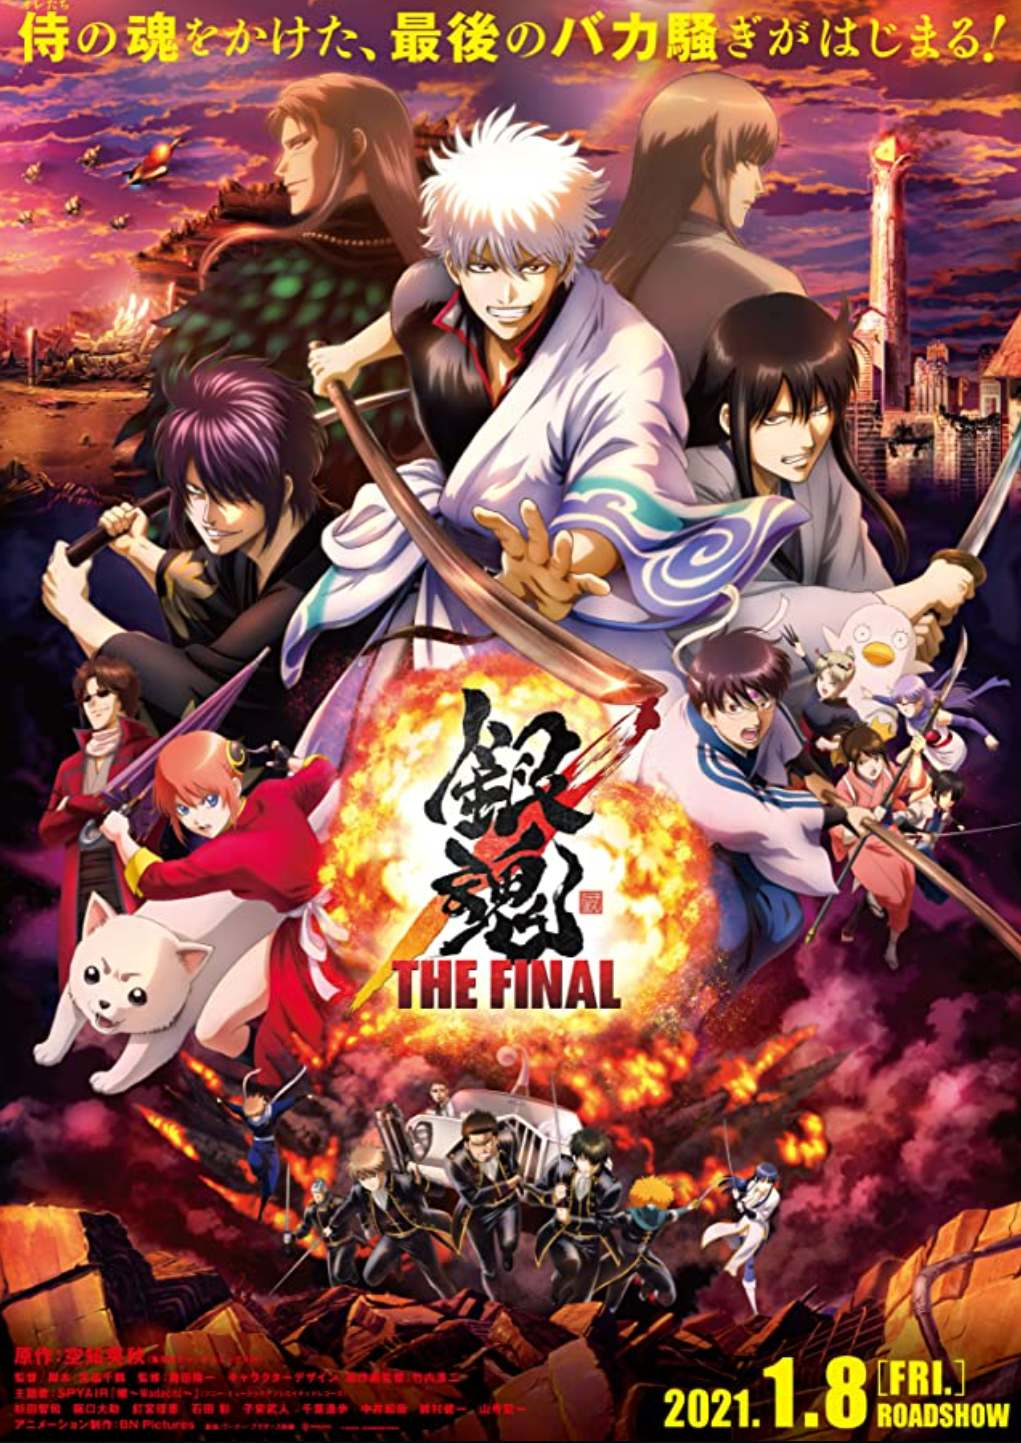 New Anime Movies 2021 1 - gintama the final